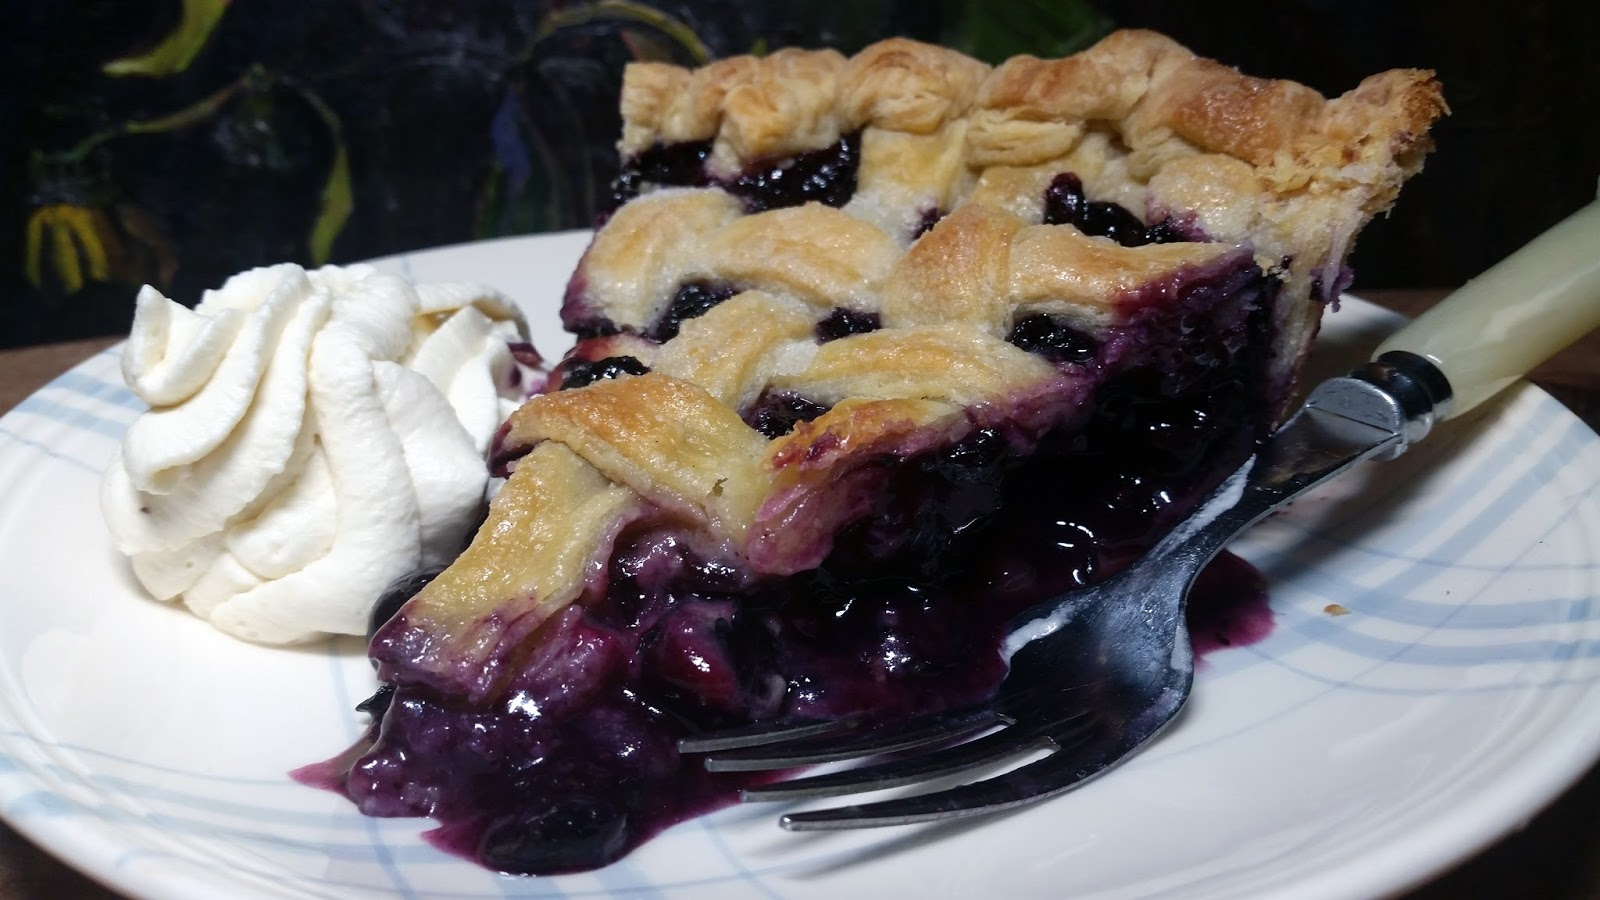 Thibeault39s Table Blueberry Pie First Blueberries of